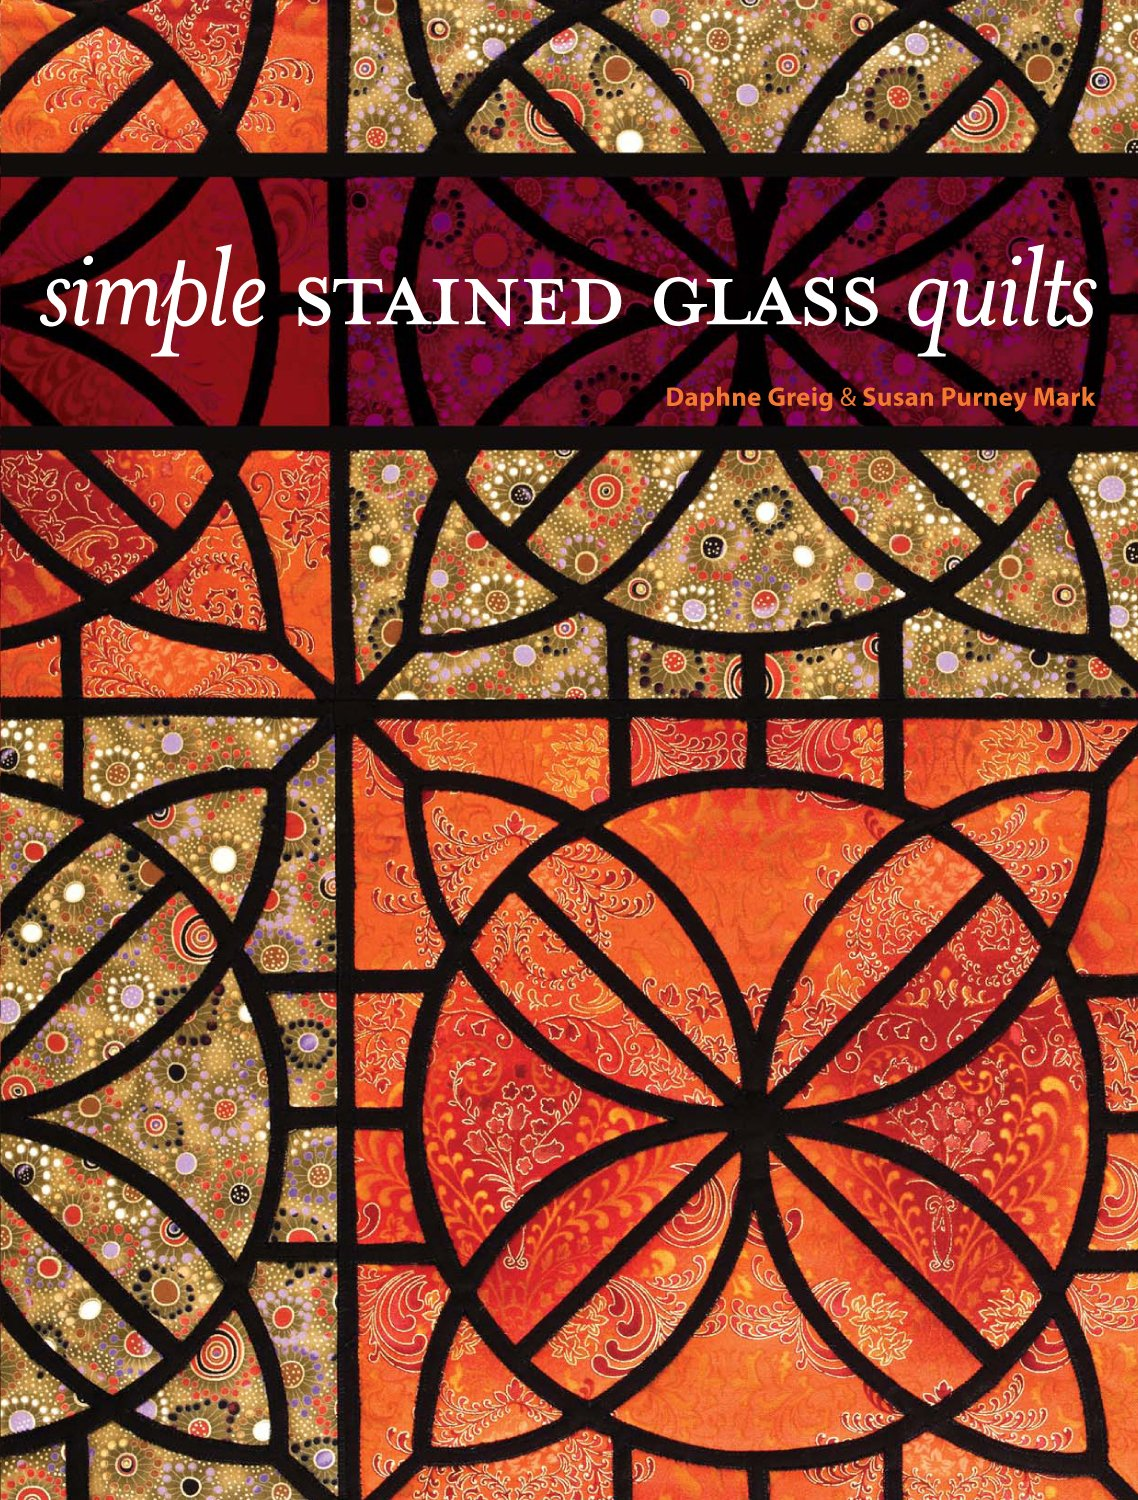 Simple Stained Glass Quilts: Daphne Greig, Susan Purney Mark:  9780896895829: Amazon.com: Books